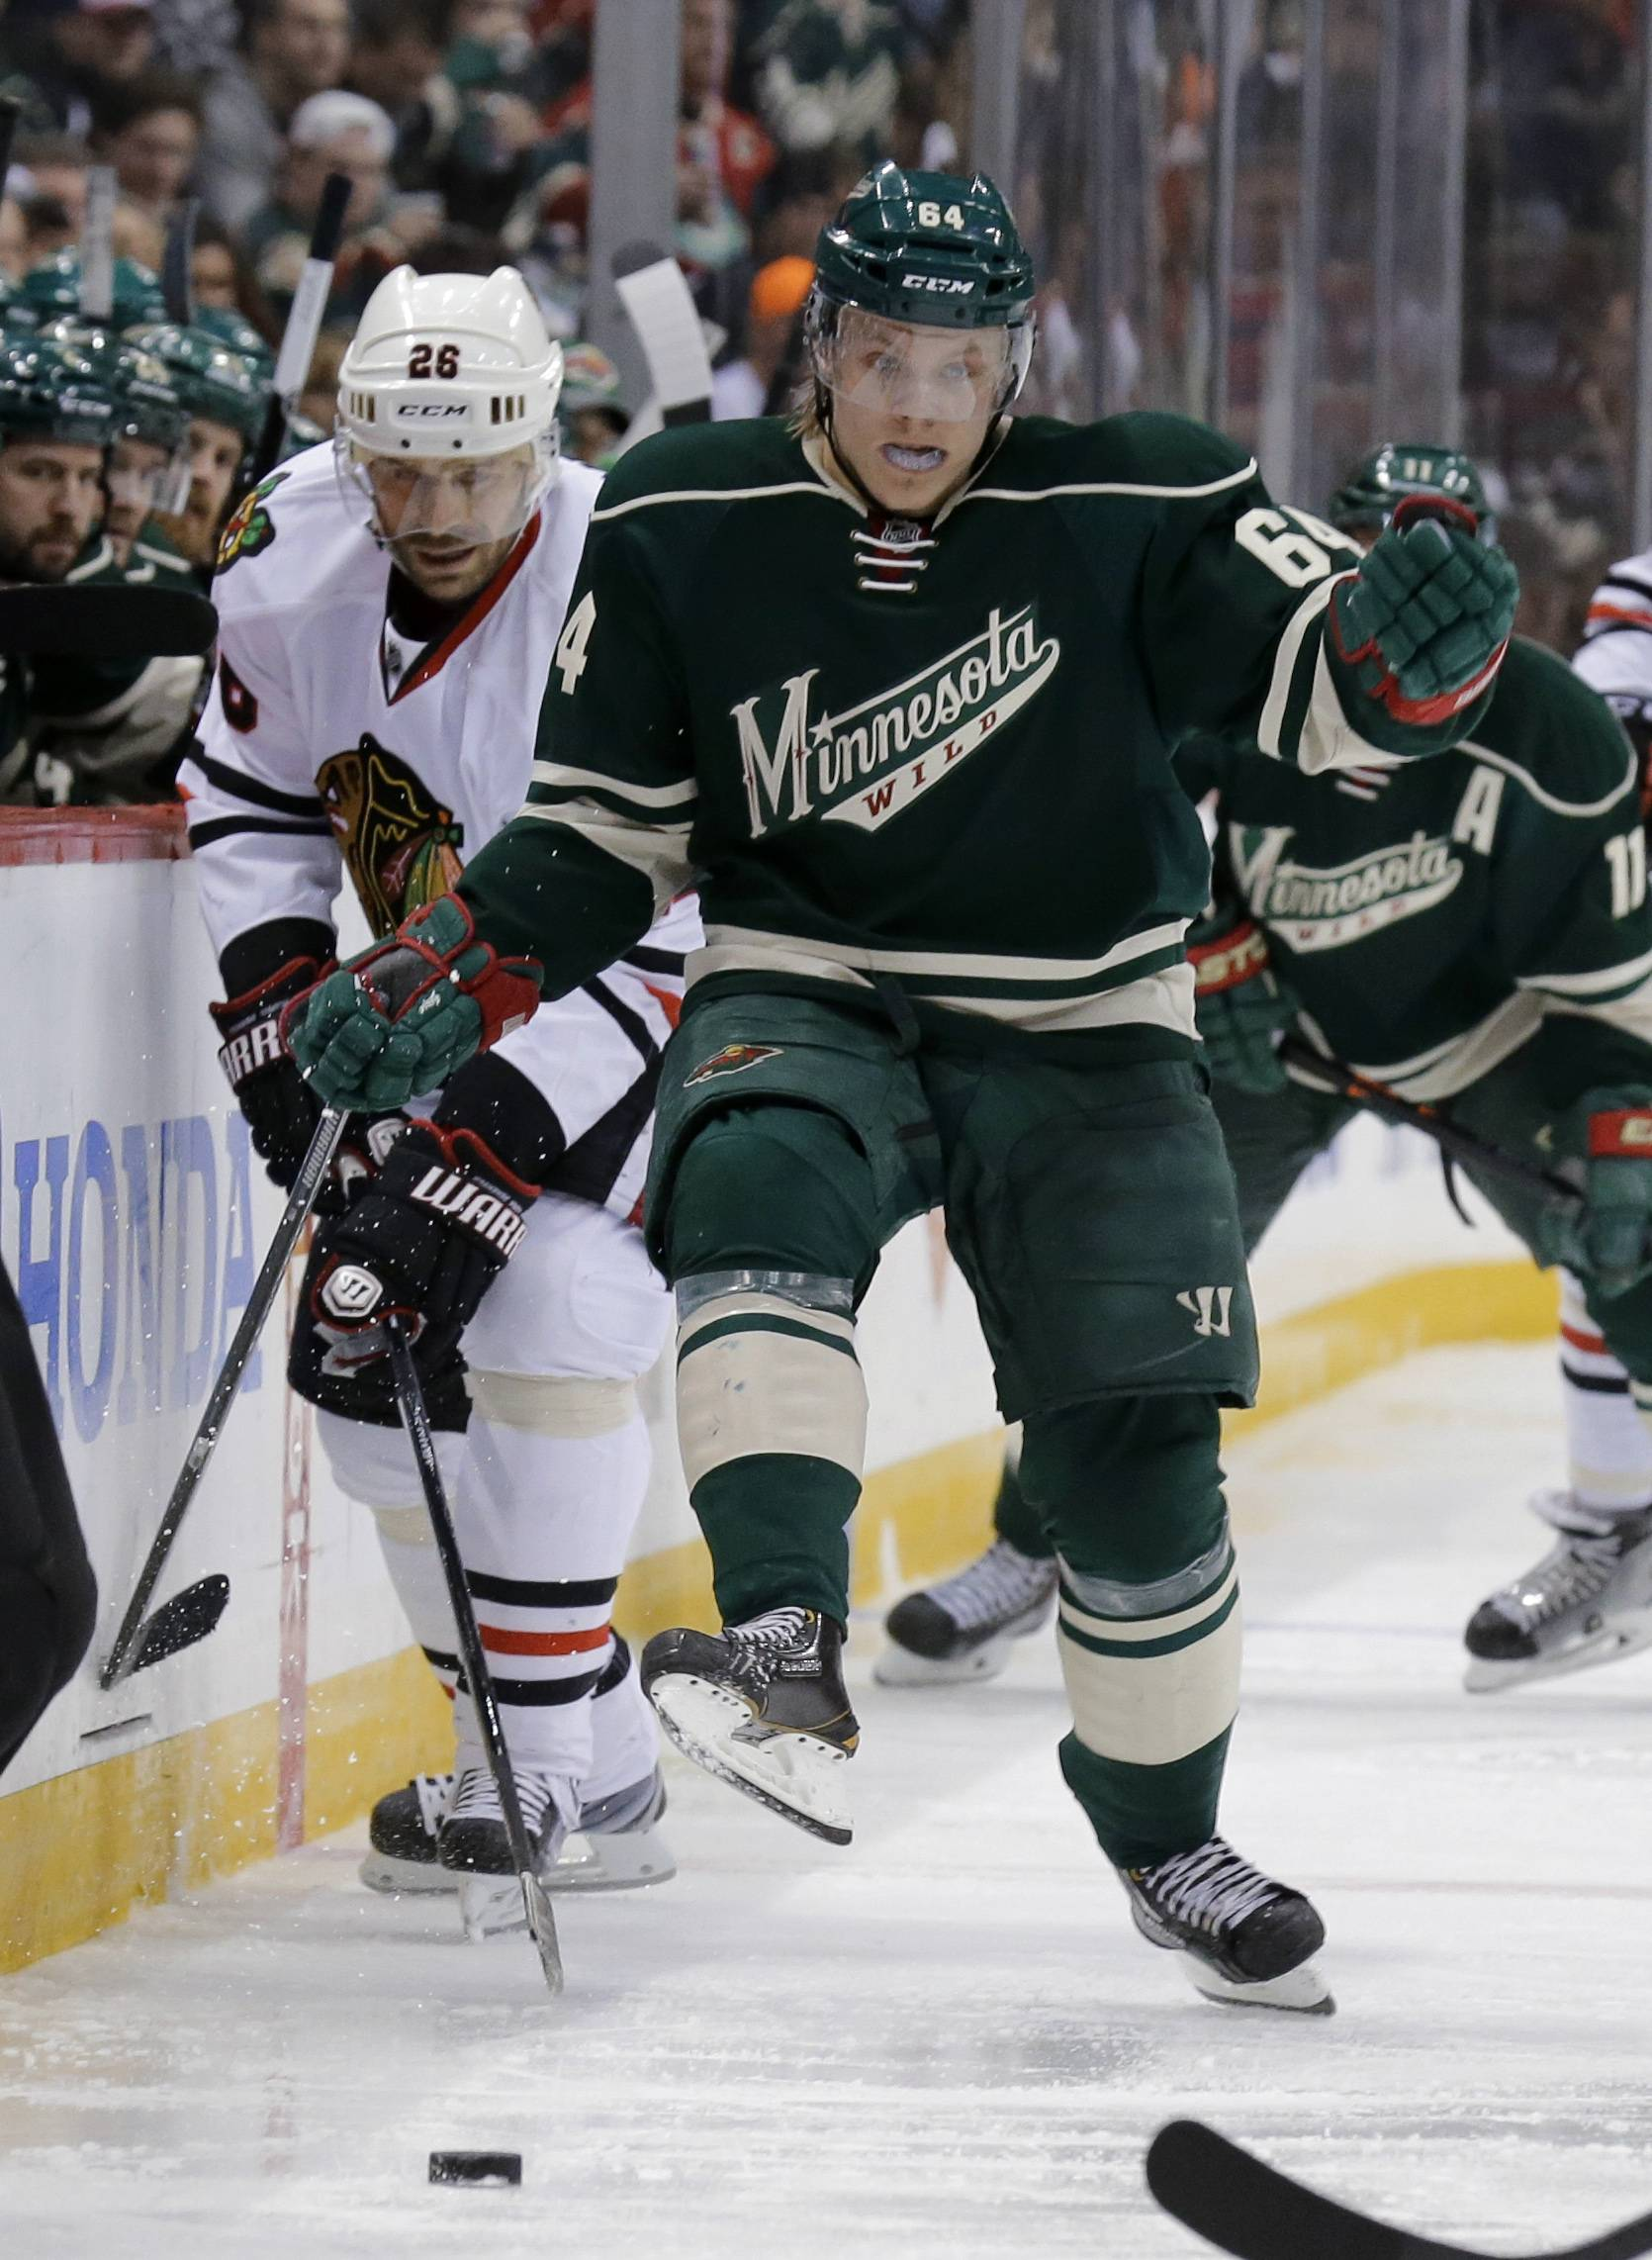 Minnesota Wild center Mikael Granlund (64), of Finland, kicks the puck to a teammate in front of Chicago Blackhawks center Michal Handzus (26), of the Czech Republic, during the second period.